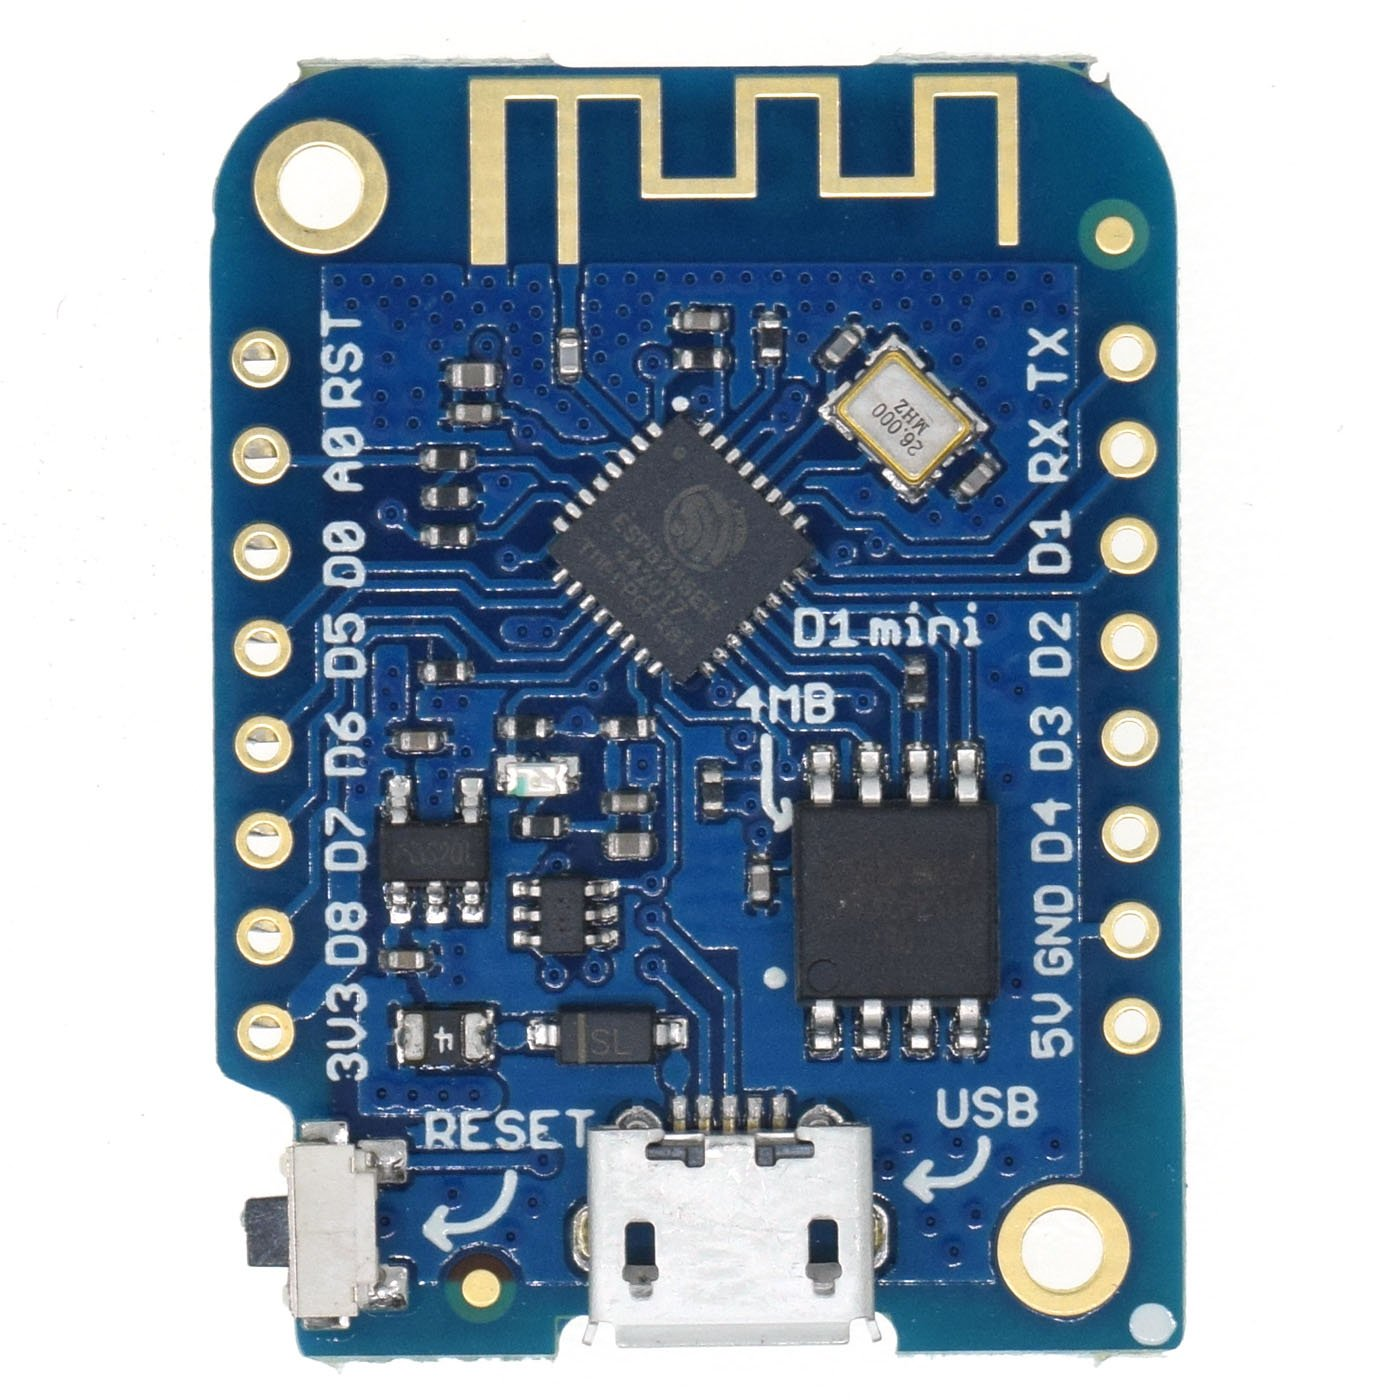 UTL D1 mini V3.1.0 - WEMOS WIFI Internet of Things development board based ESP8266 4MB MicroPython Nodemcu Arduino Compatible